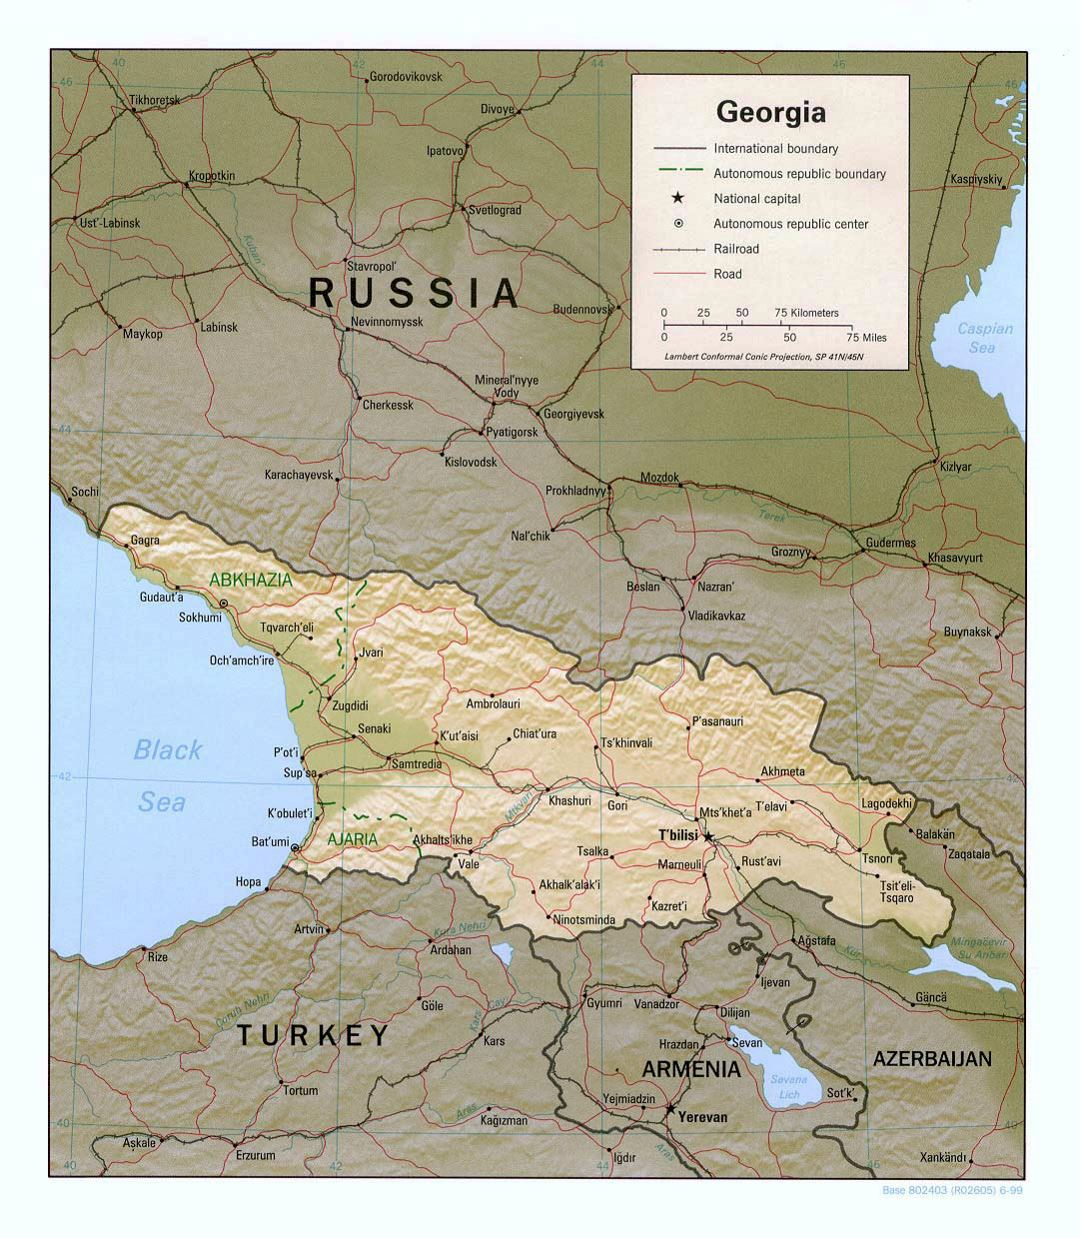 Detailed political map of Georgia with relief, roads, railroads and major cities - 1999